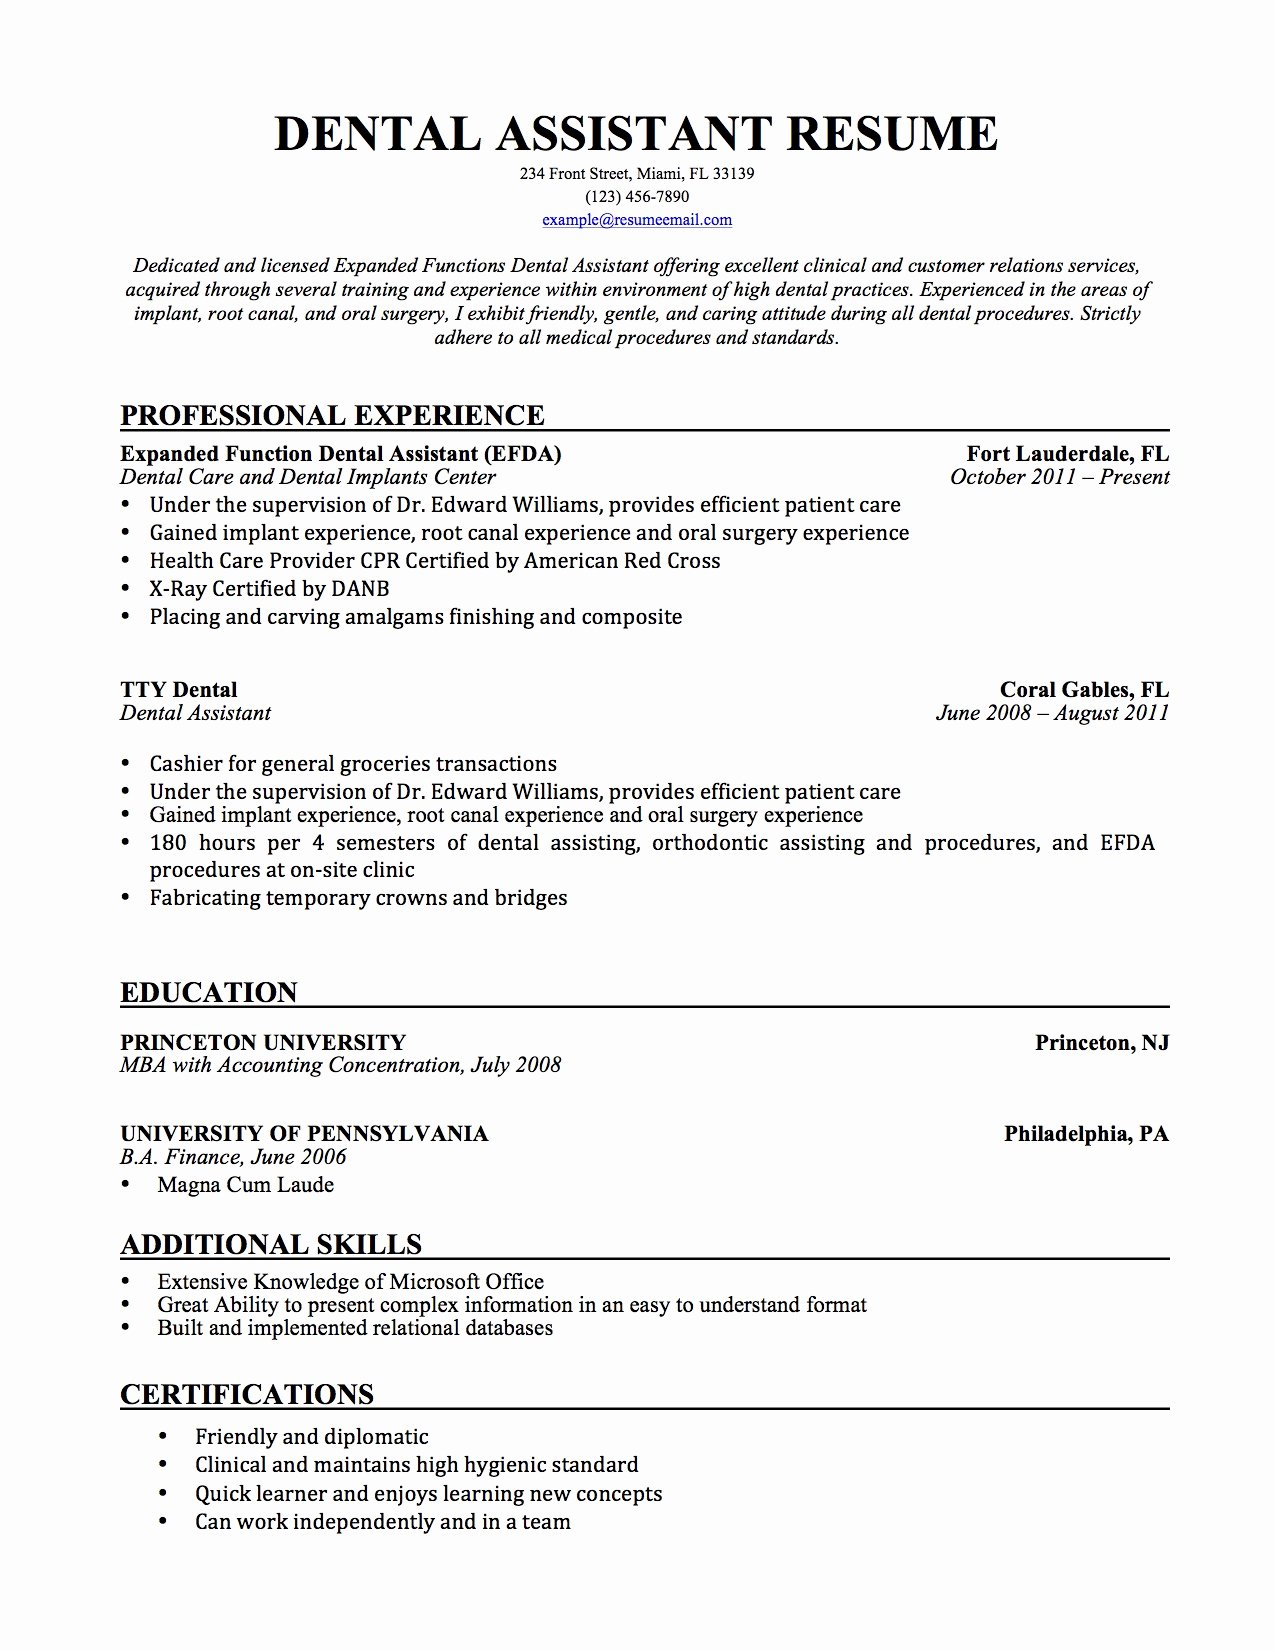 Dental assistant Resume Sample Cover Letter Awesome Dental